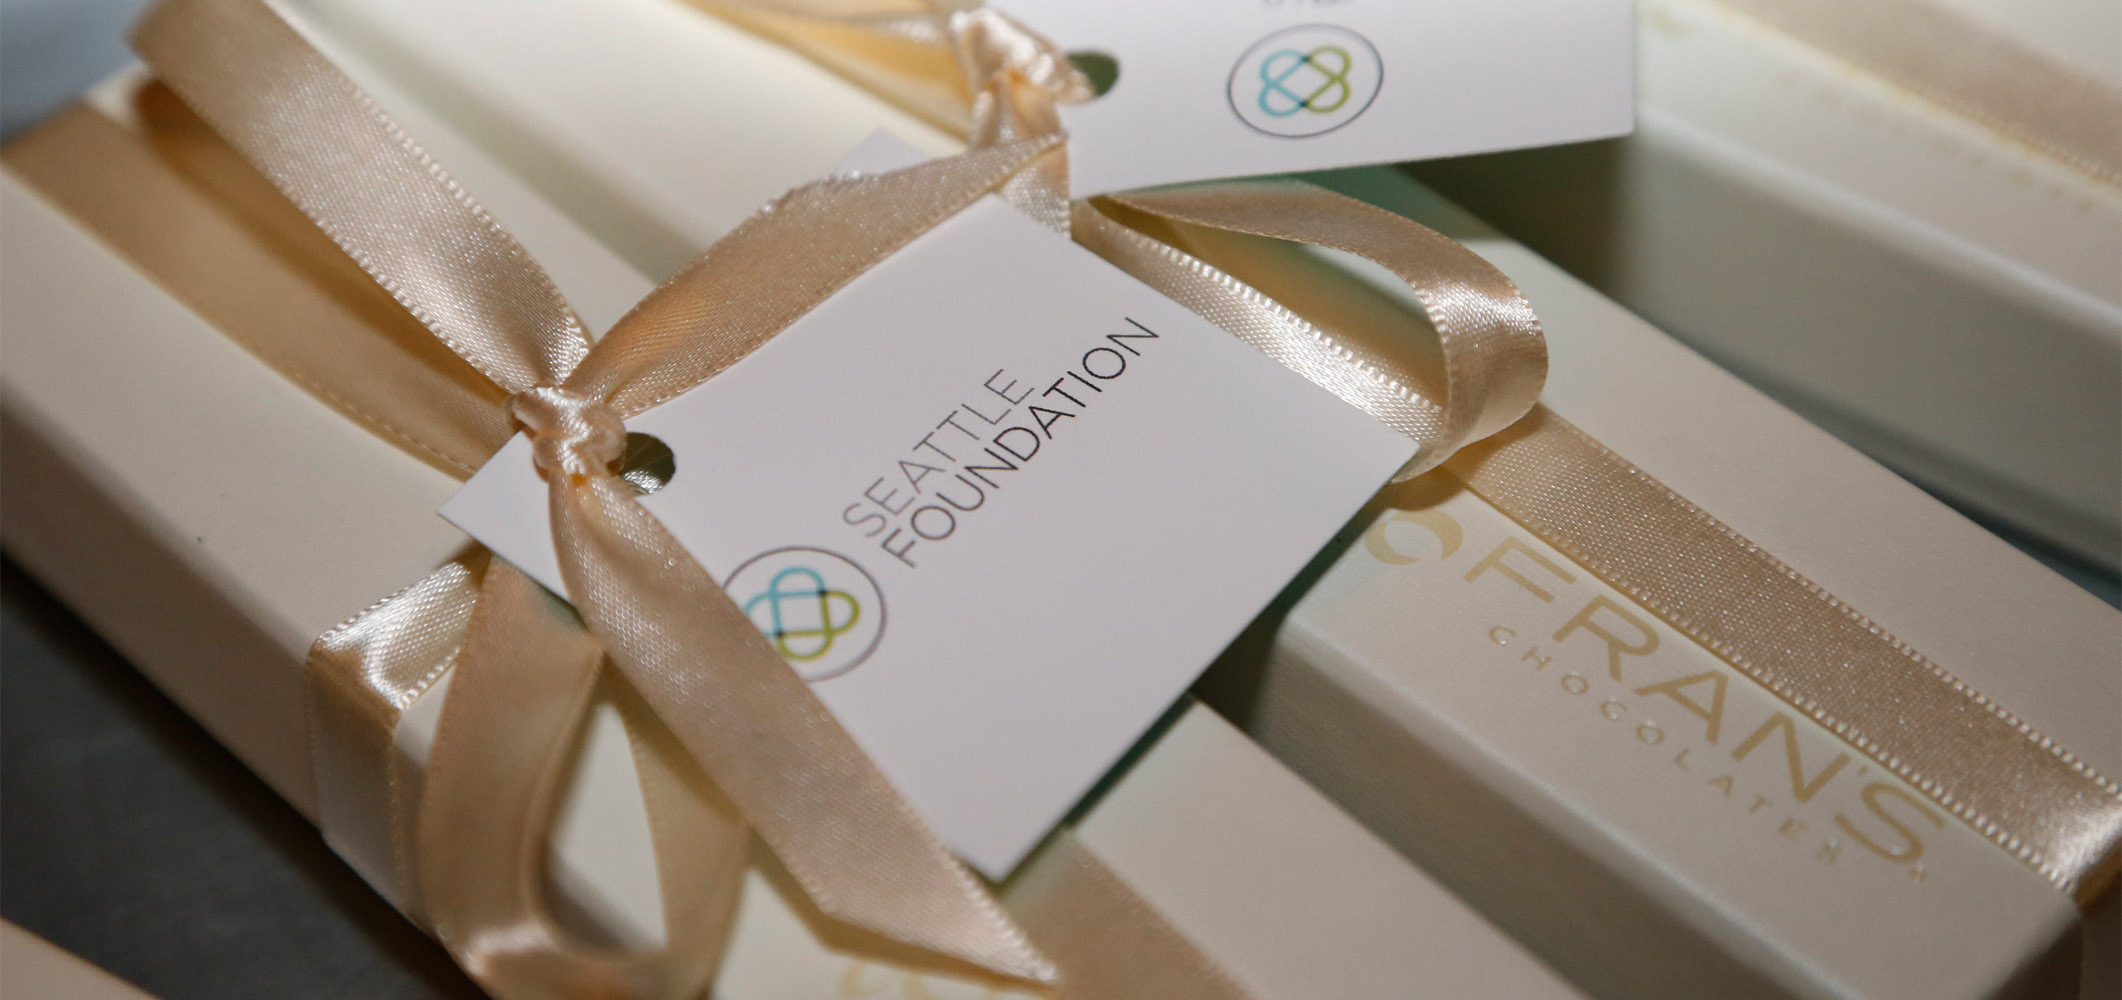 Seattle Foundation branded chocolate giveaways